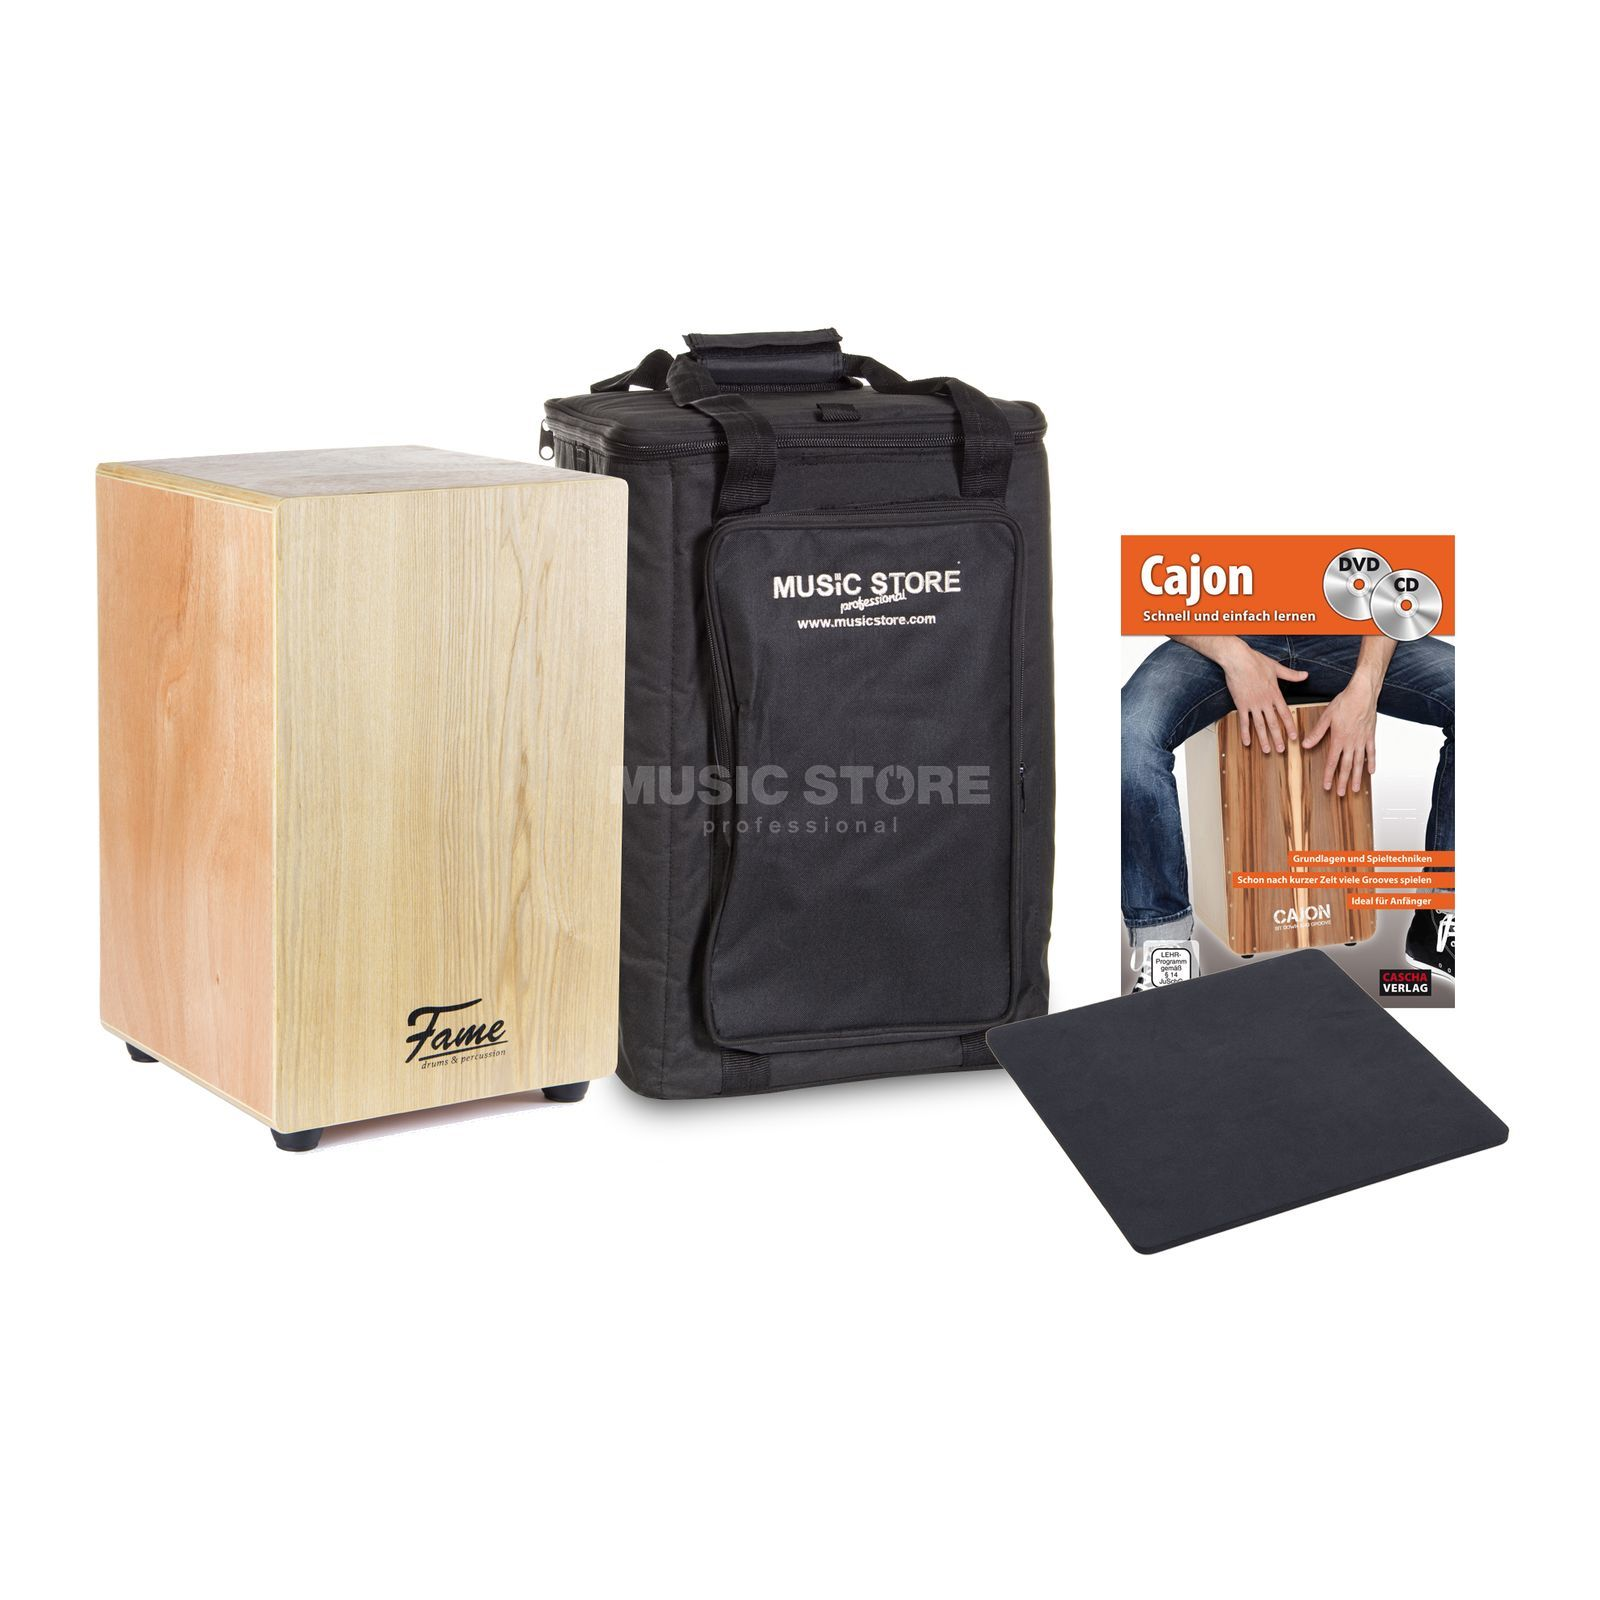 Beginner Cajon+Bag+DVD - Set Produktbild